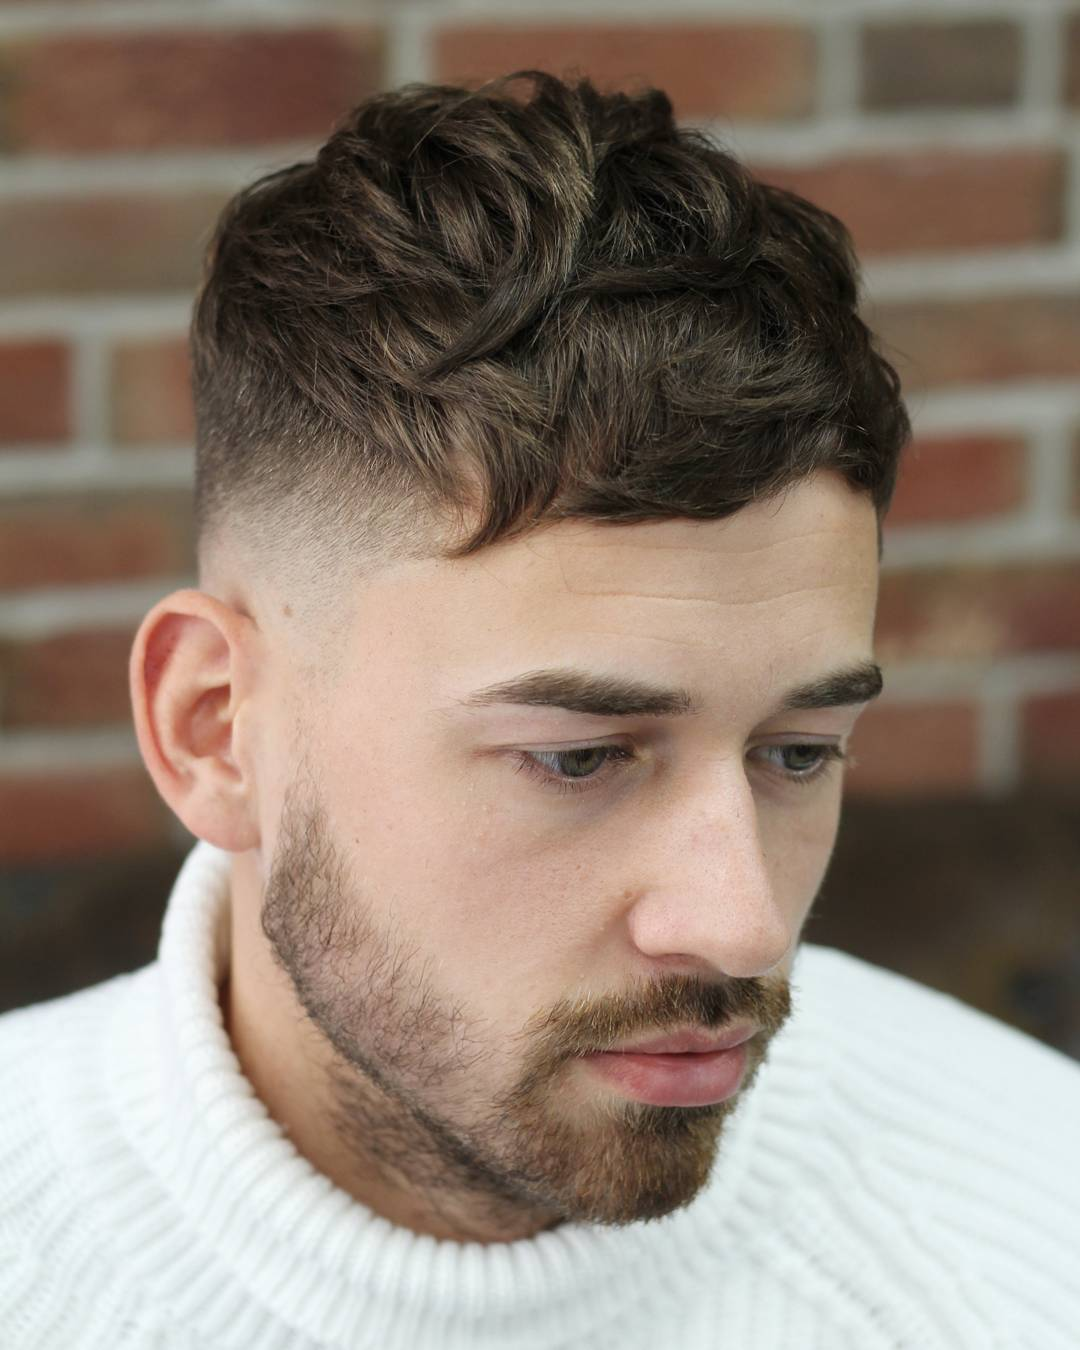 barber_djirlauw-messy-mens-short-haircut